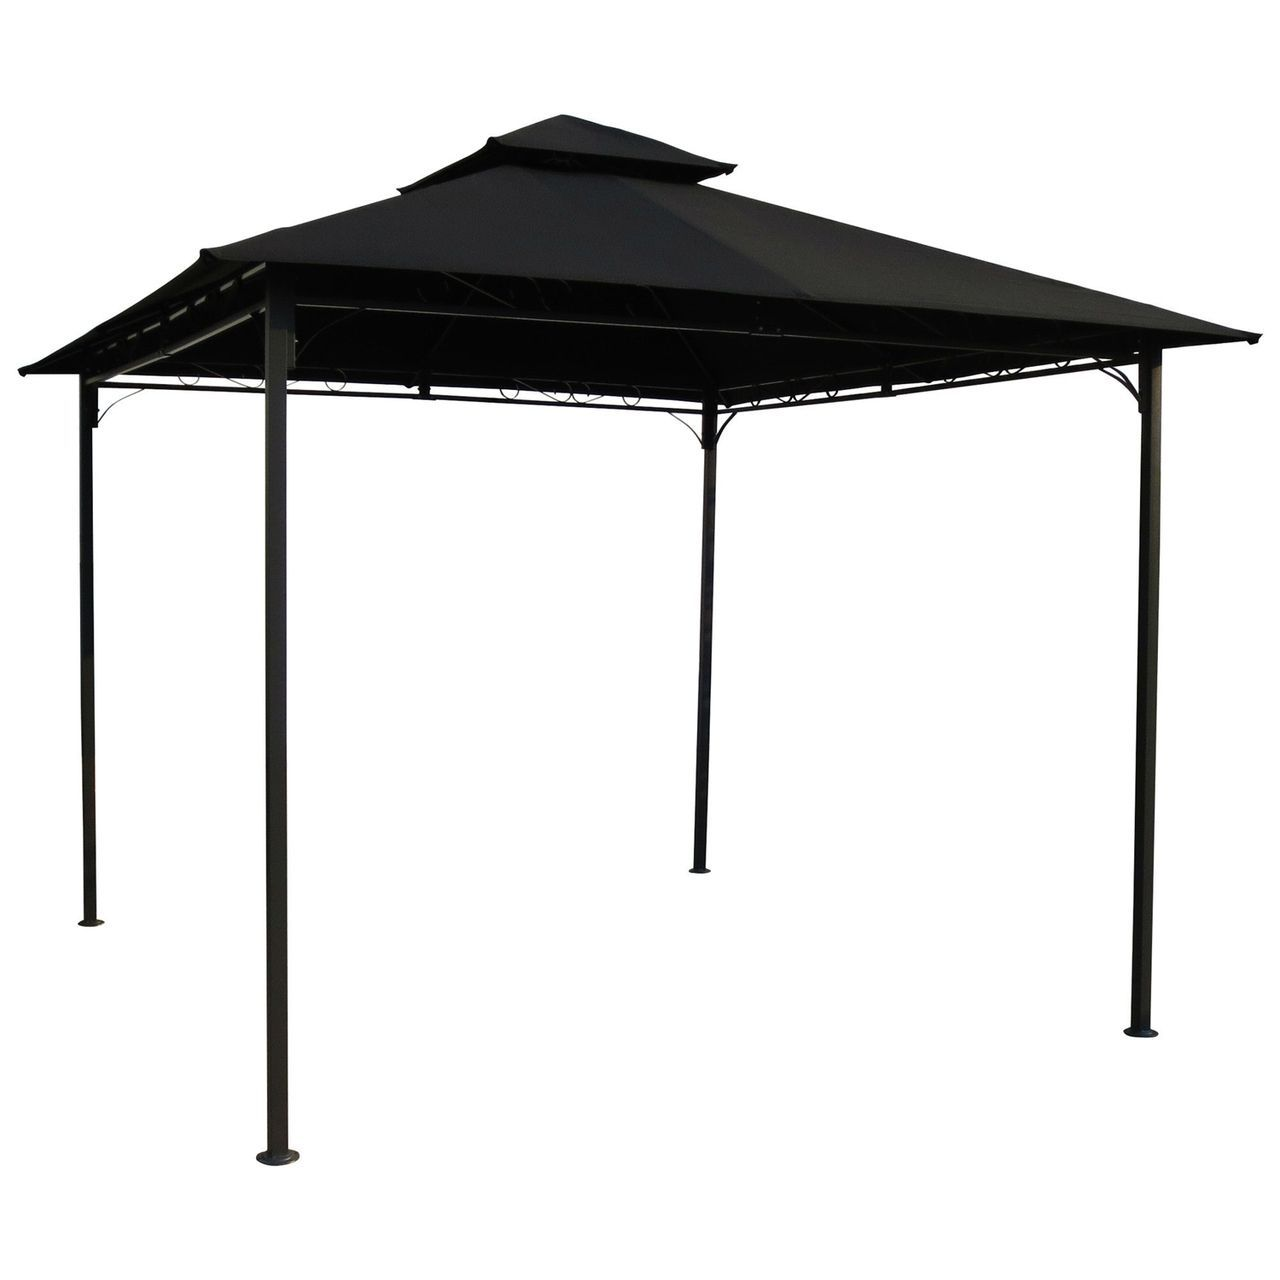 Outdoor Gazebo 10x10 Black Weather Resistant Fabric Canopy Gazebo Roof Patio Canopy Canopy Tent